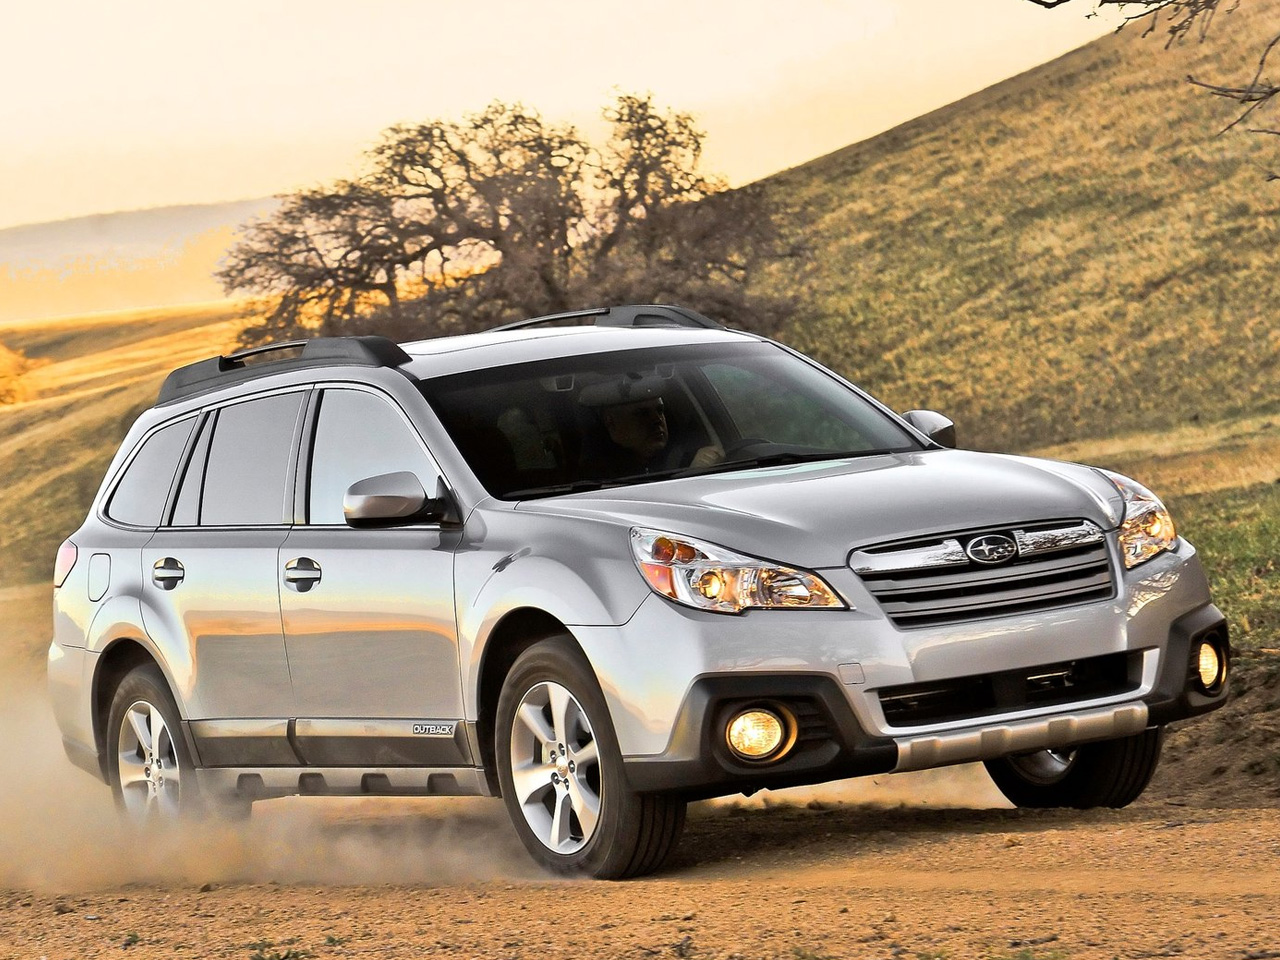 2013 subaru outback review and pictures car review specification and pictures. Black Bedroom Furniture Sets. Home Design Ideas